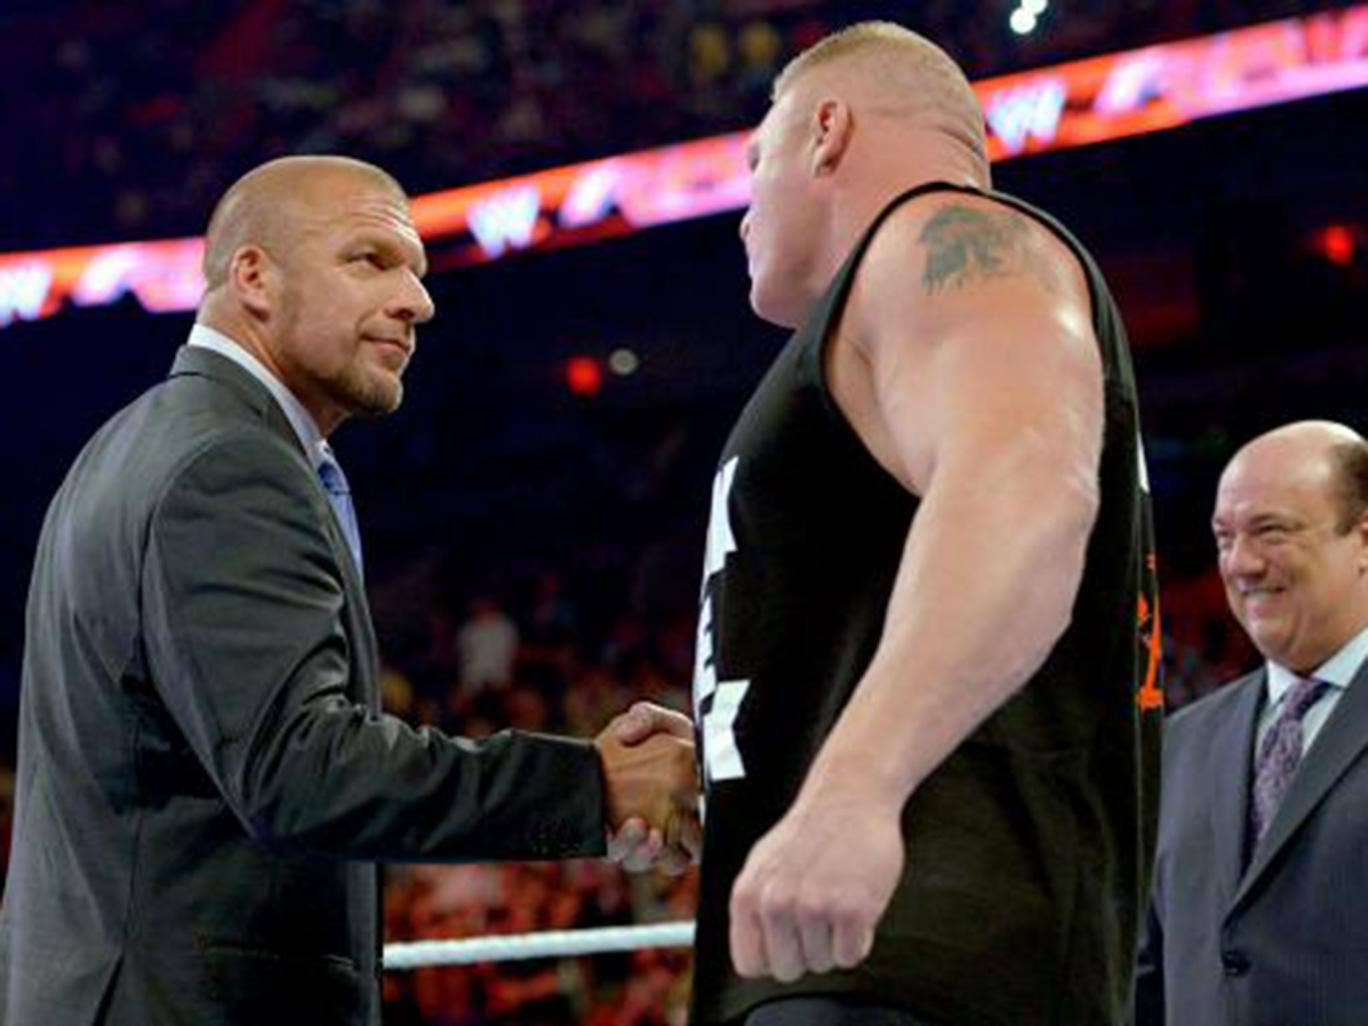 Triple H agrees to name Brock Lesnar as the number one contender to John Cena's WWE World Heavyweight title